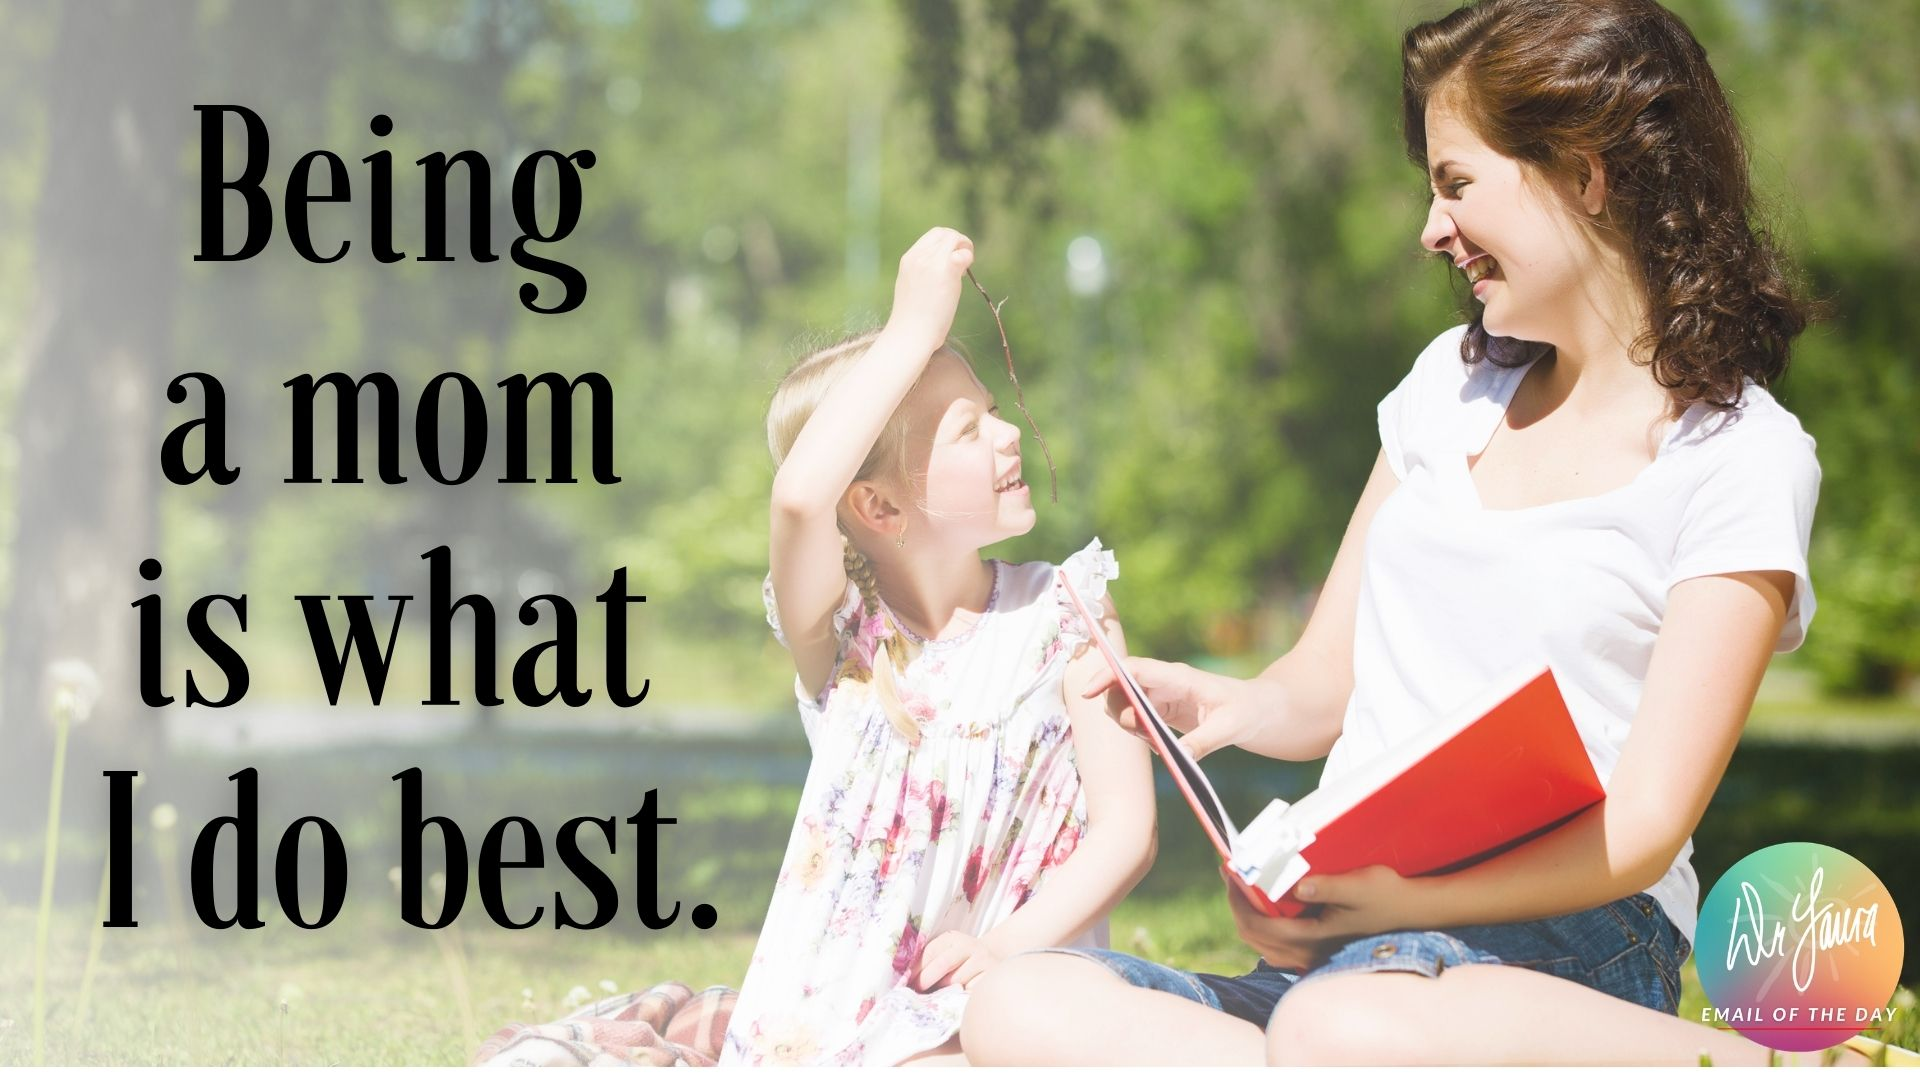 Email of the Day: I'm Using My Mothering Skills to Help Others